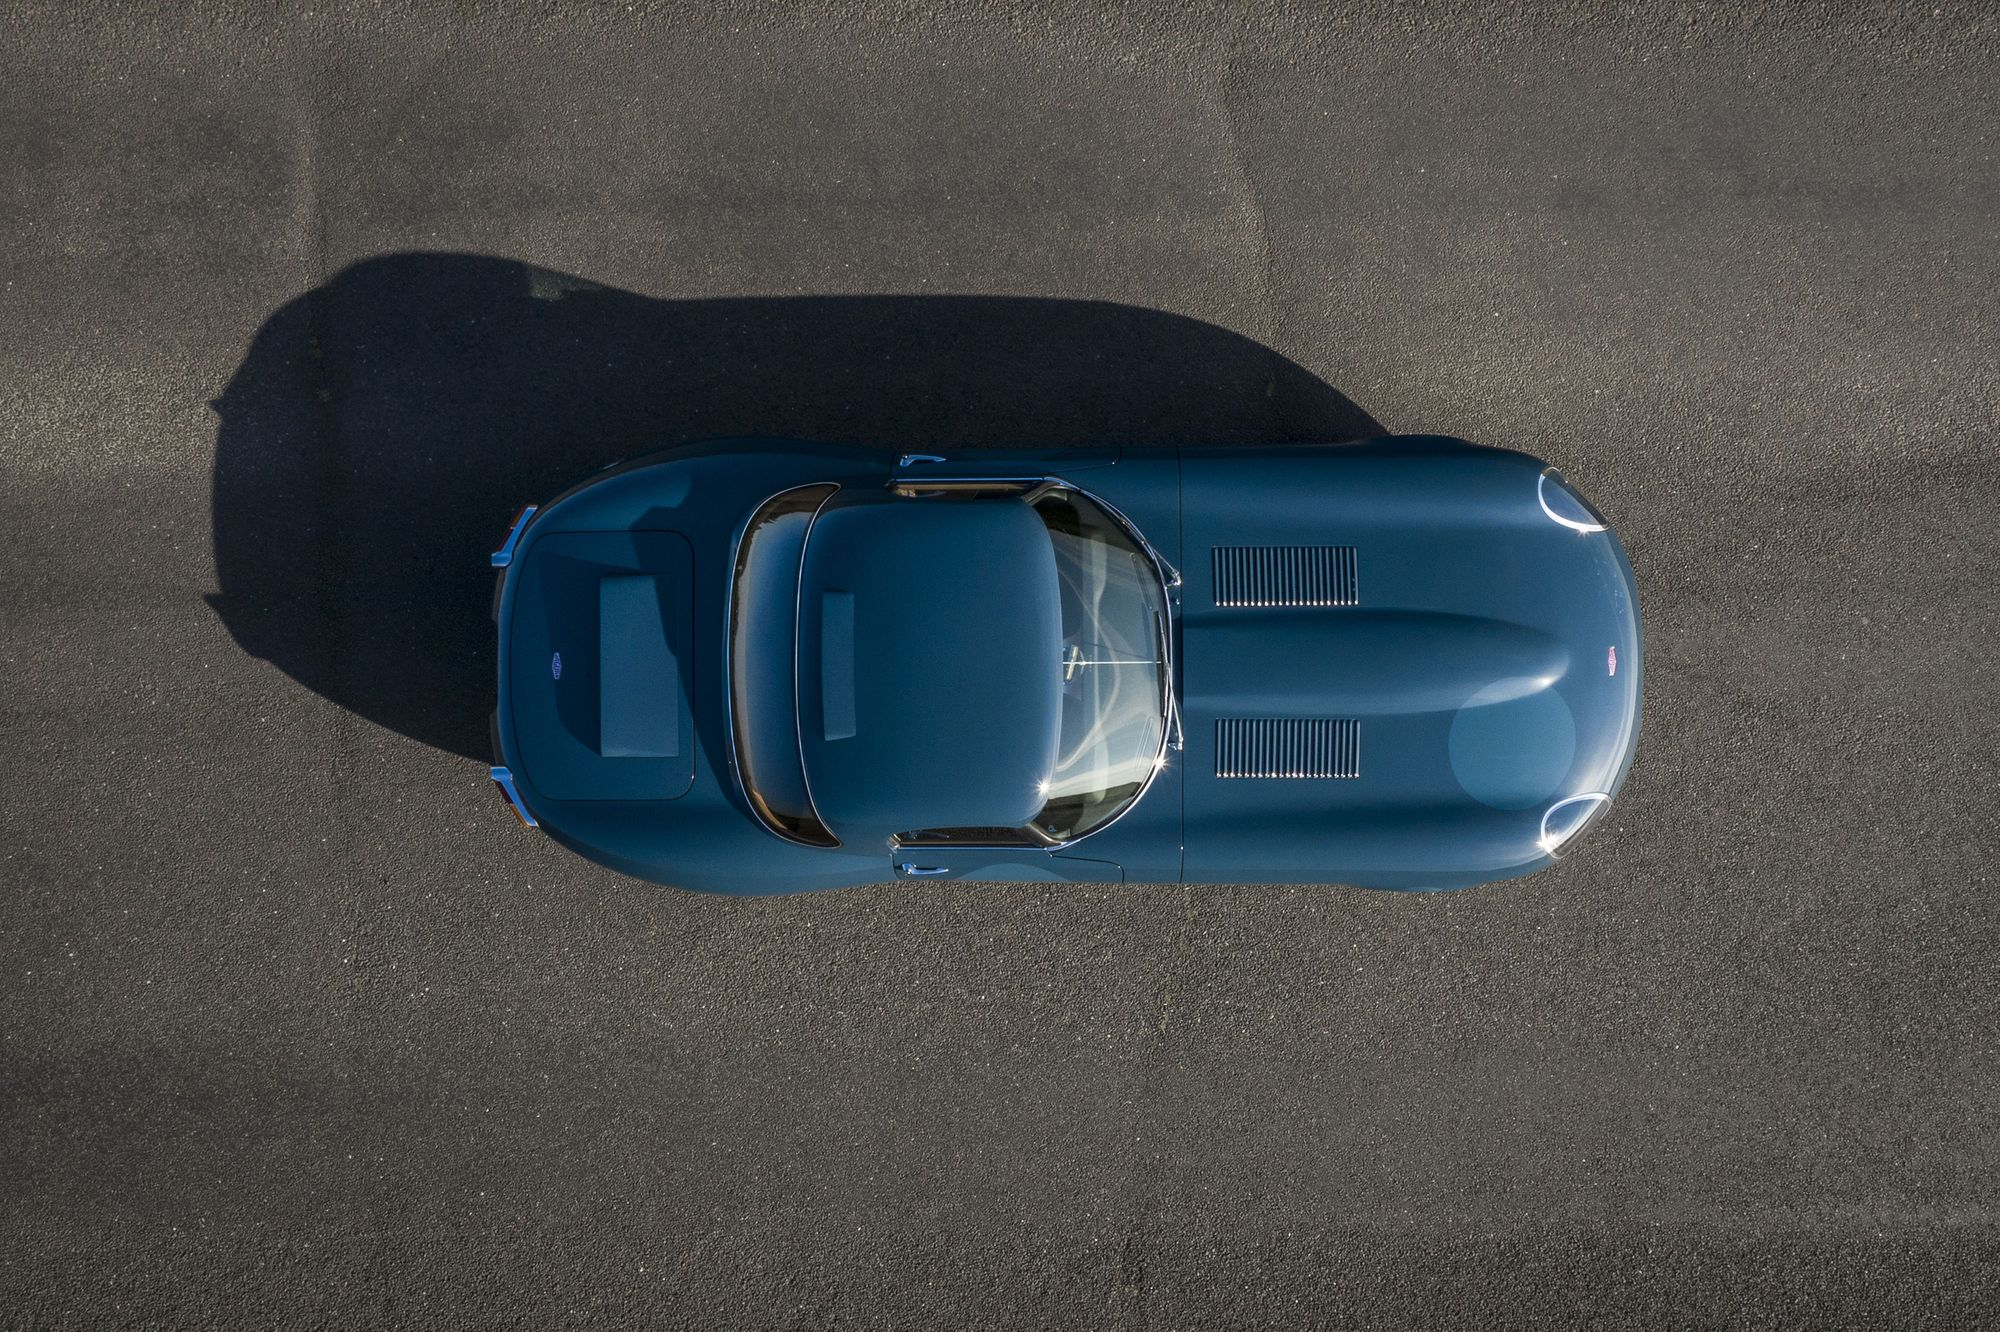 Overhead view of the Eagle E-Type Lightweight GT_Hagerty